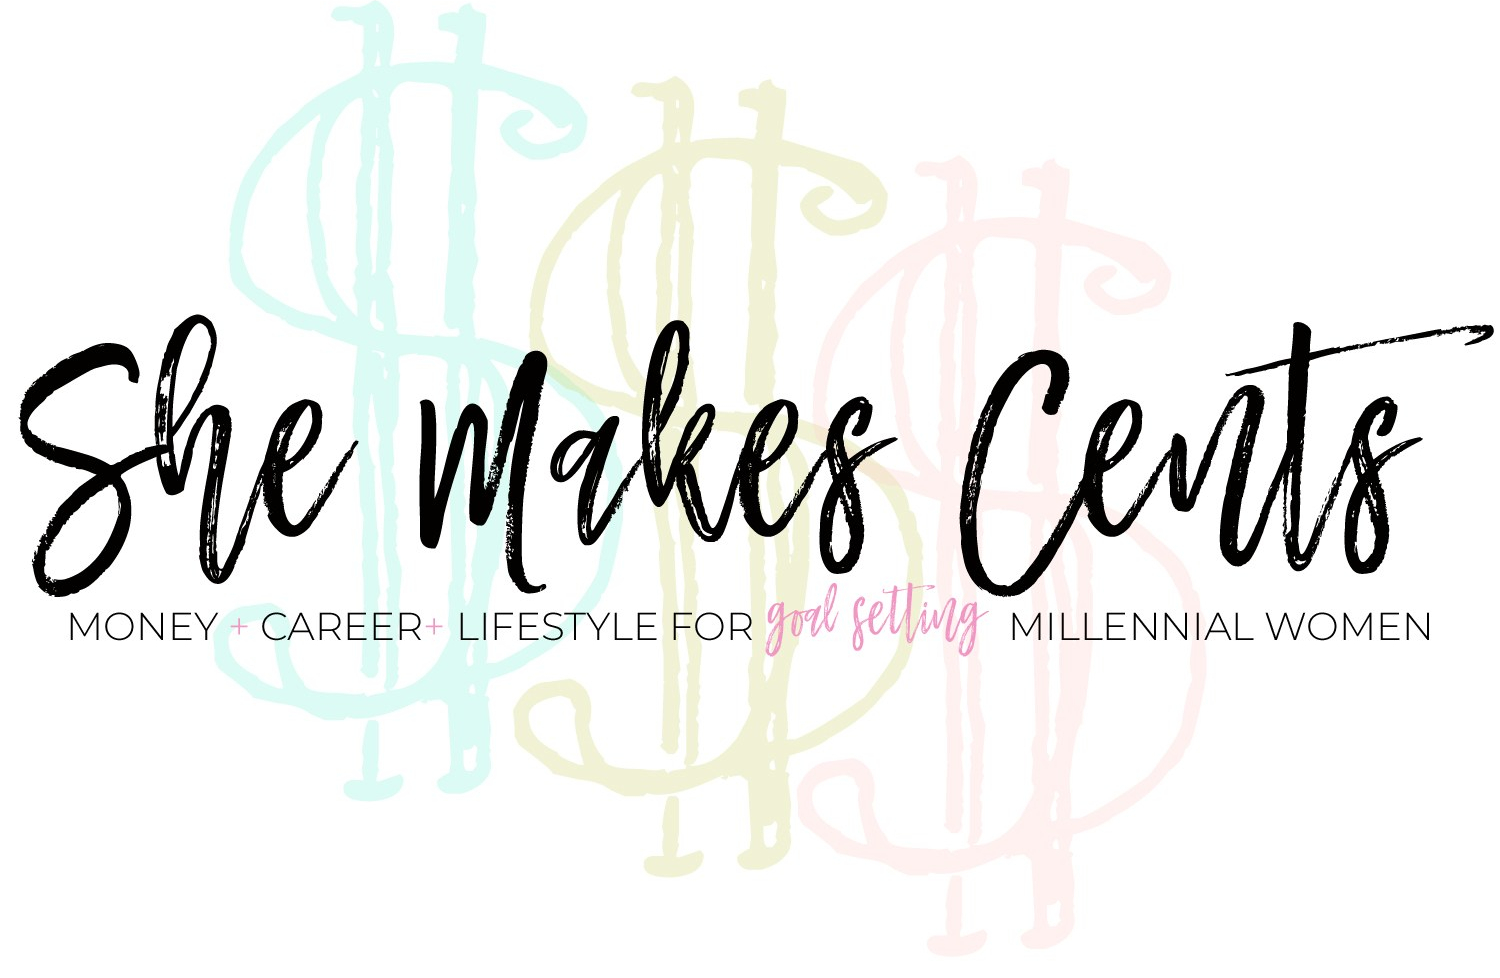 She Makes Cents Logo- from Top Atlanta Blogger, Danielle YB Vason